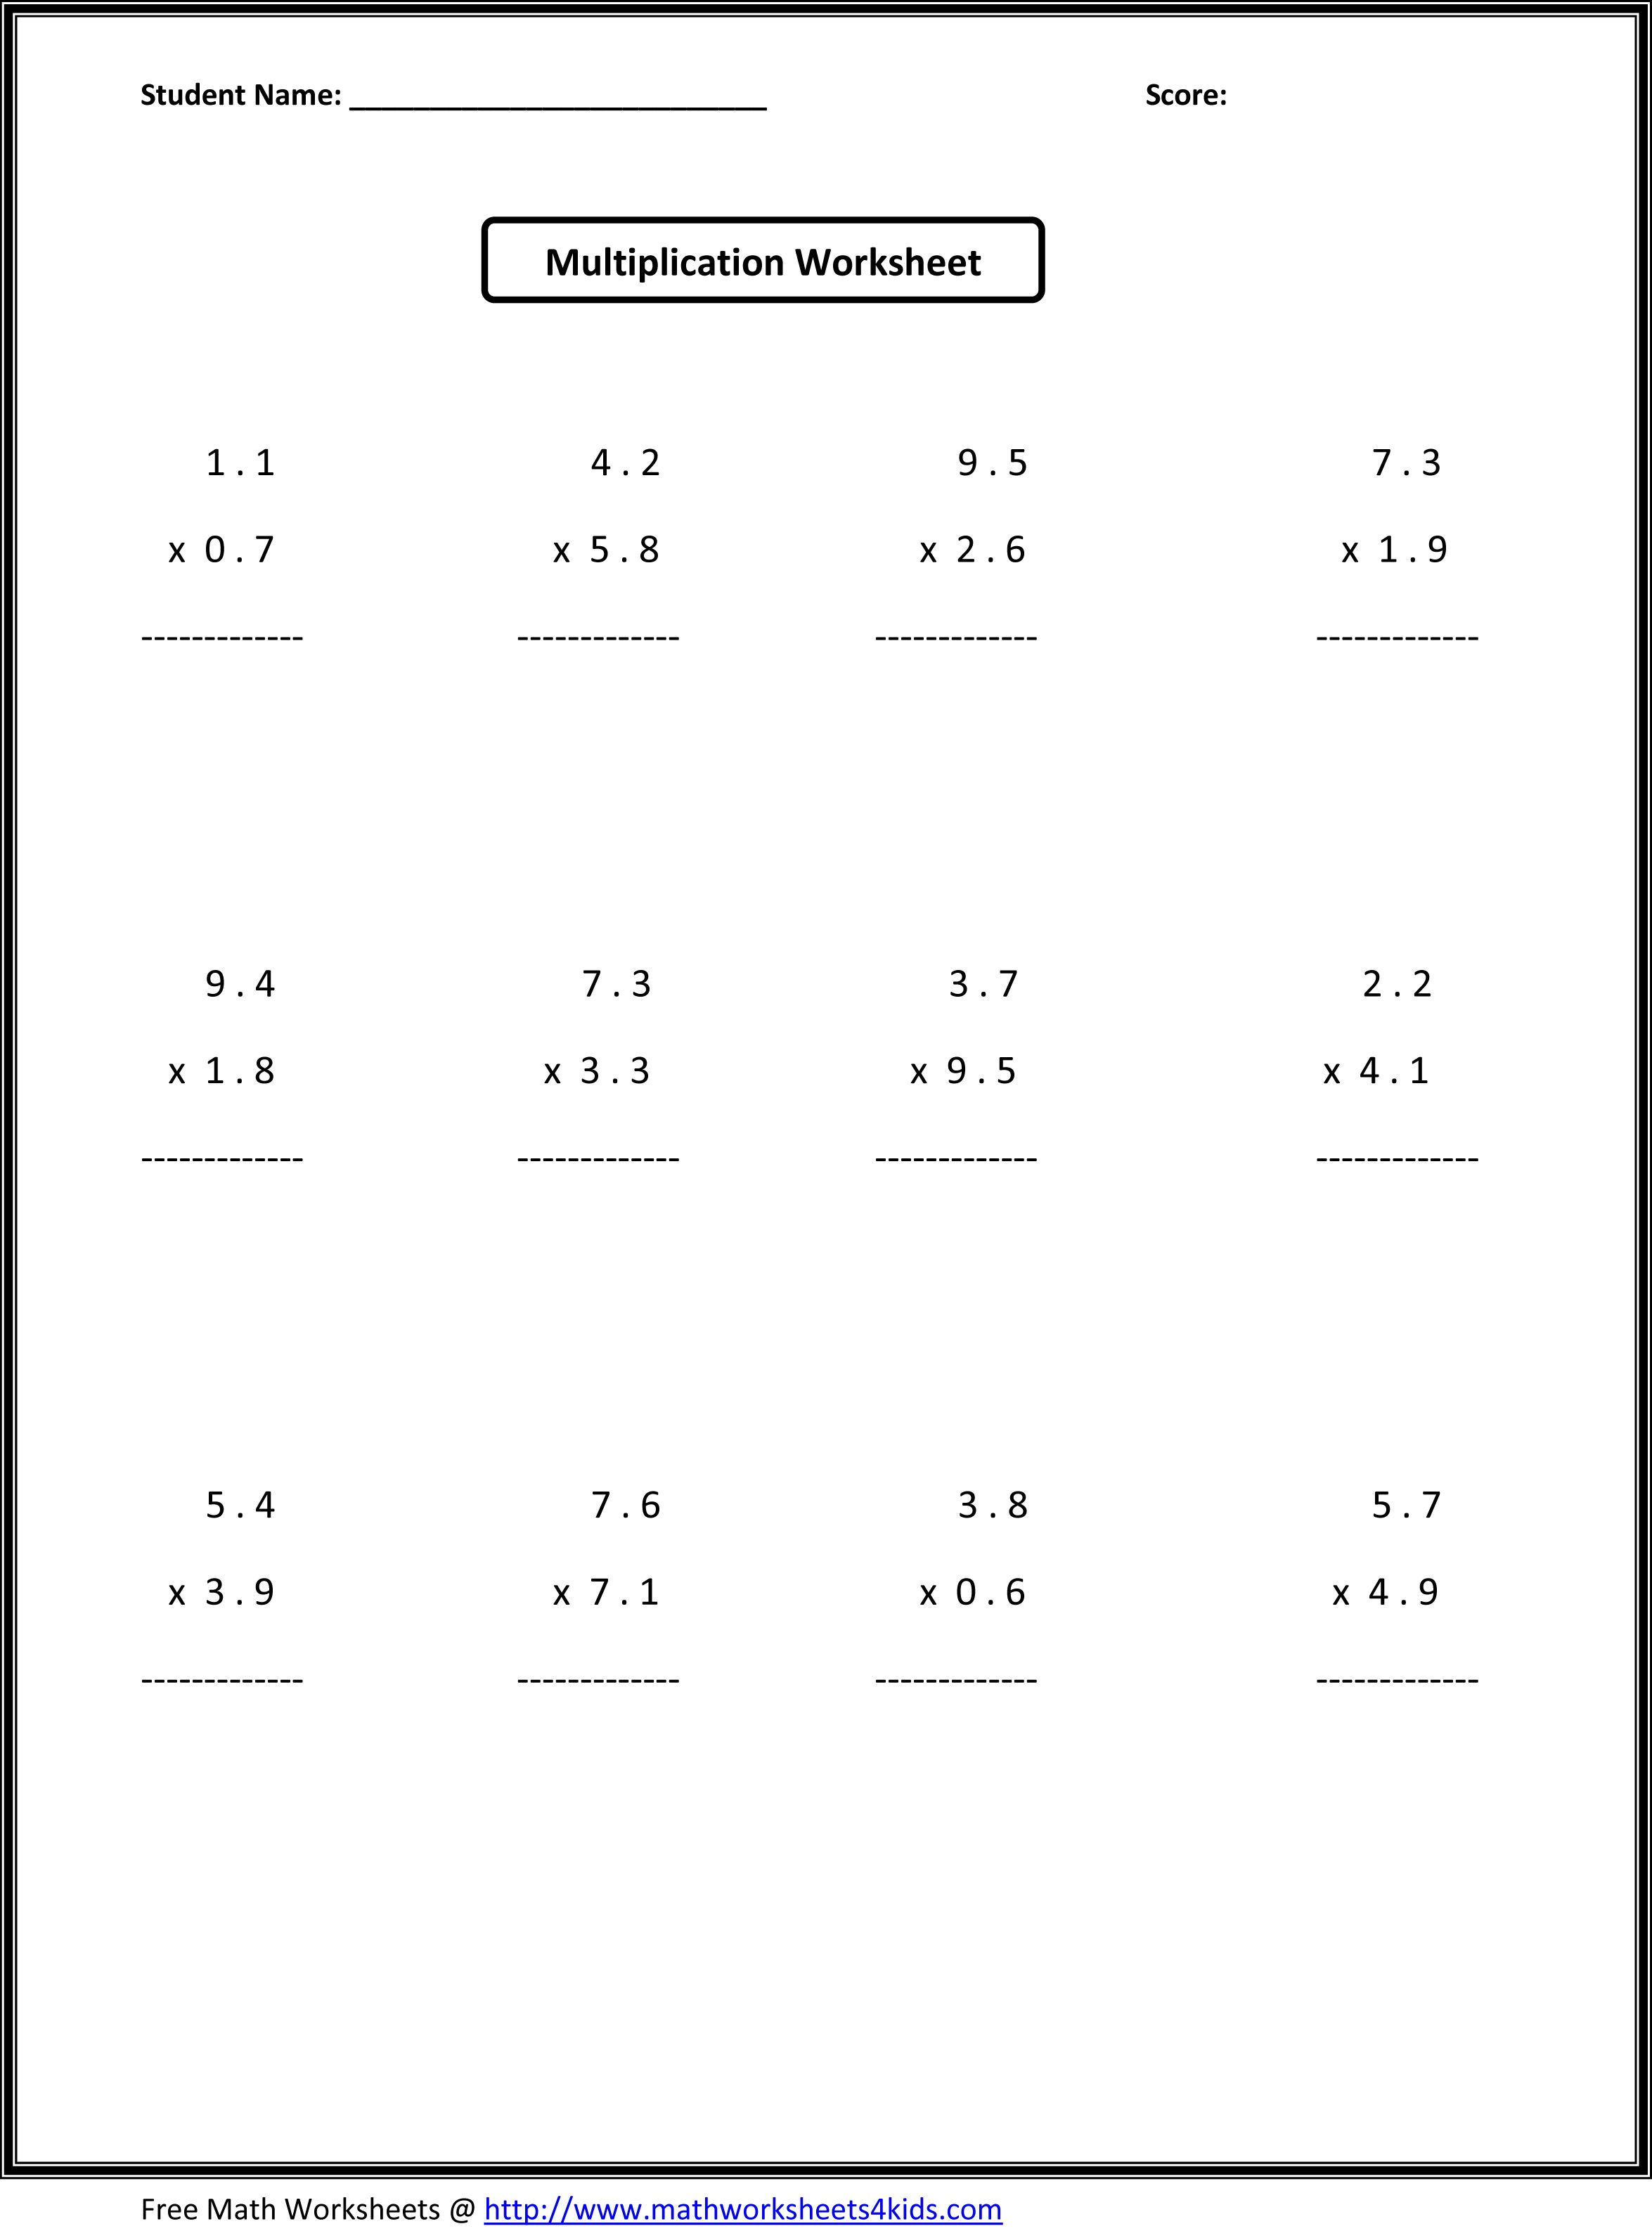 Math Decimals Worksheets Math Riddles 4th 5th 6th 7th Grade – Adding and Subtracting Decimals Worksheets 6th Grade